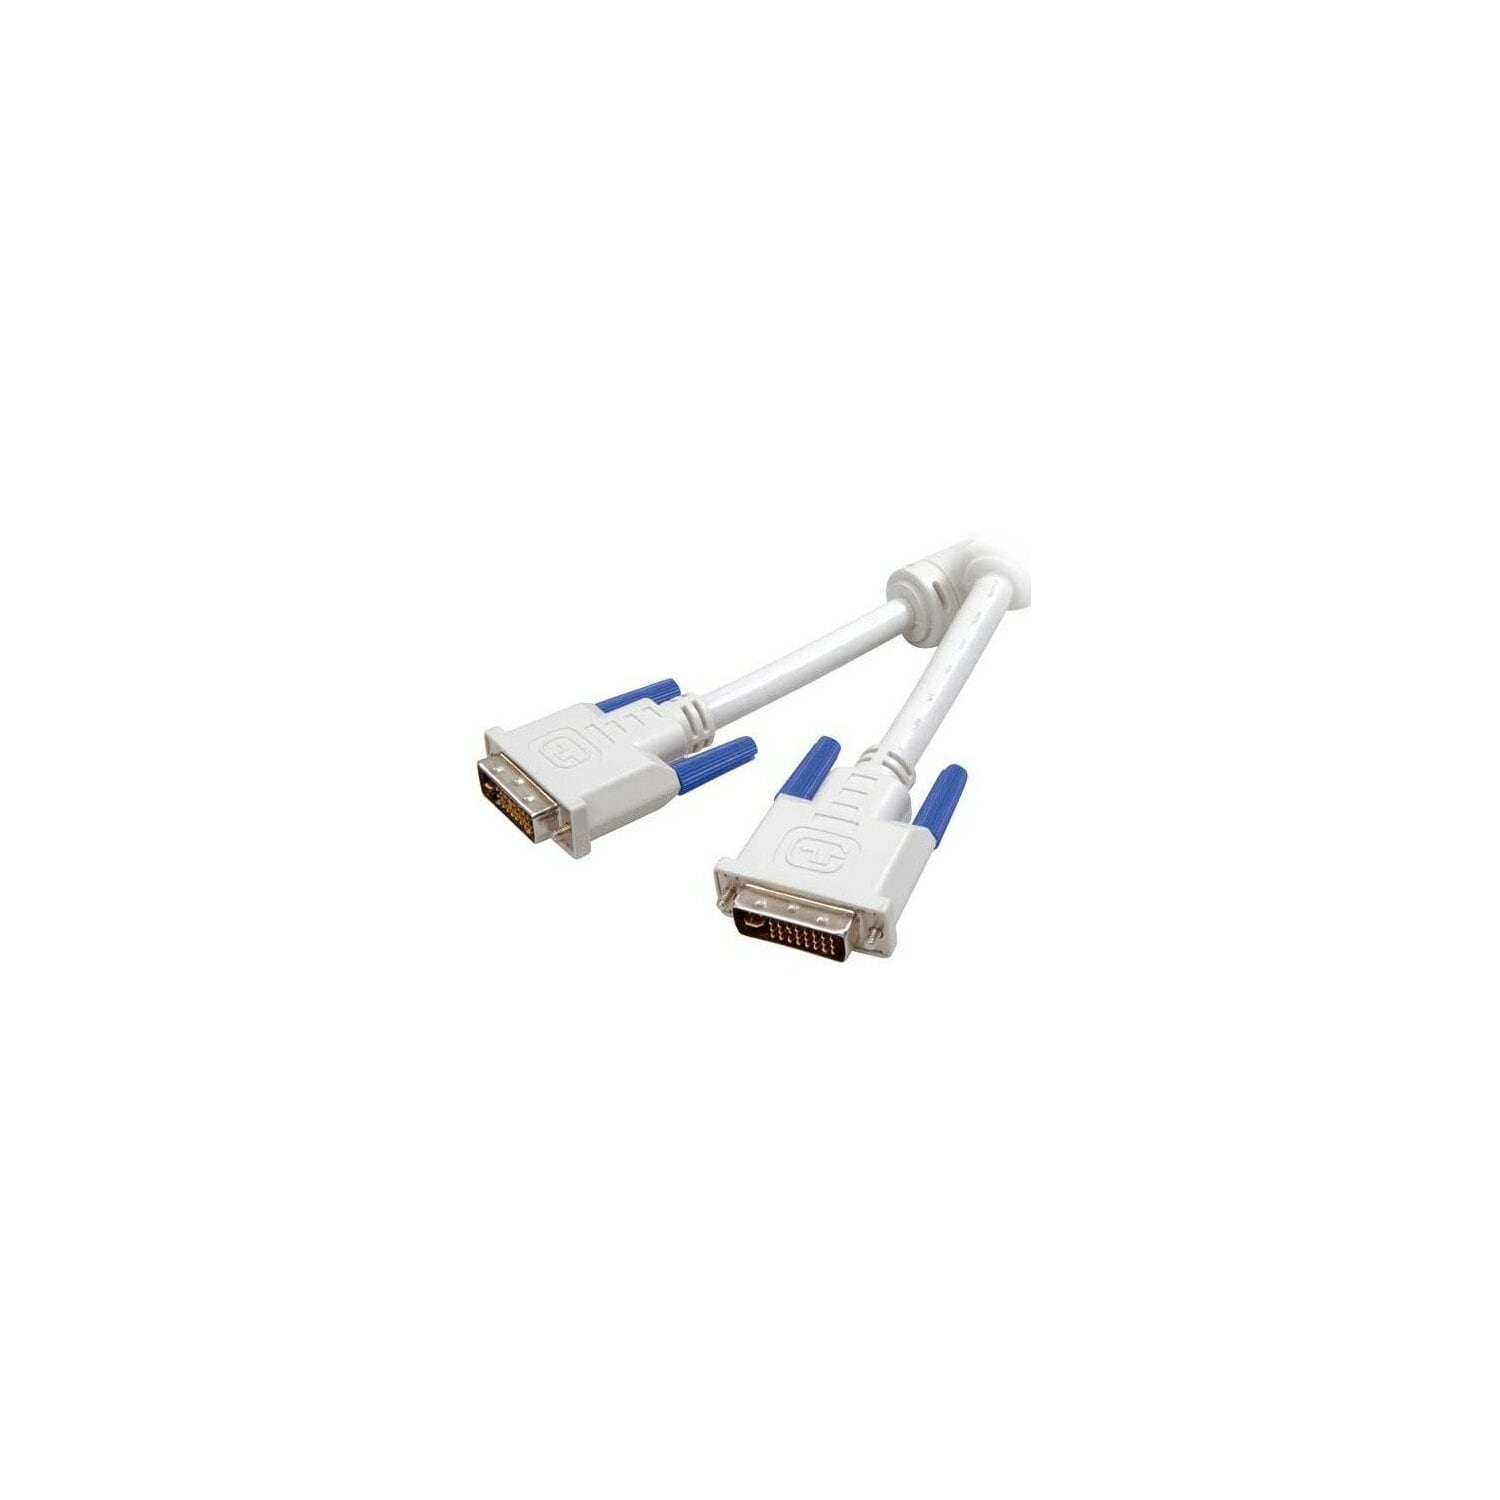 Kabel VIVANCO DVI-D - DVI-D 1.8 m